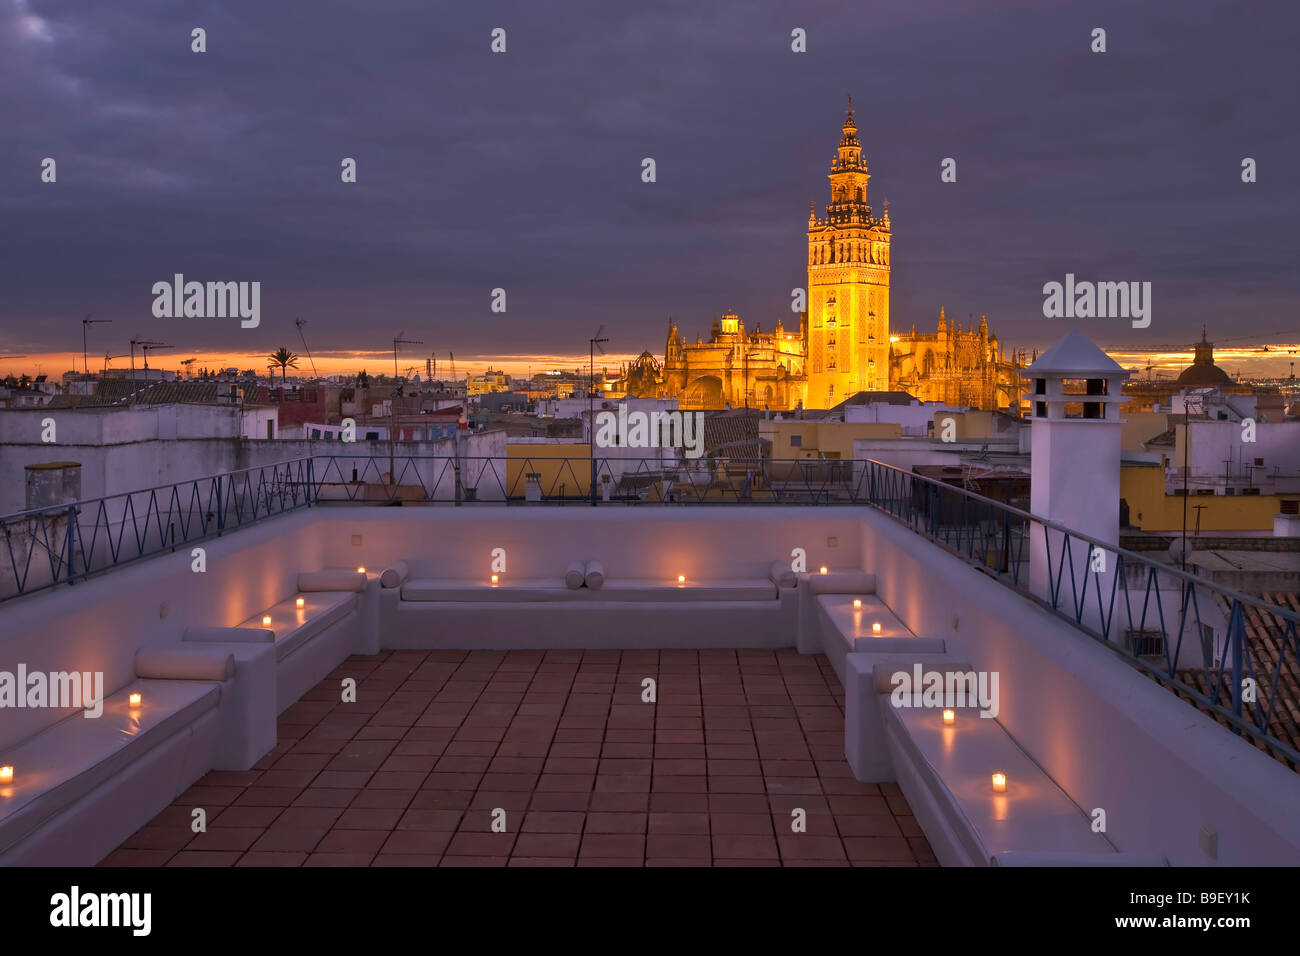 Aire De Sevilla Baños Arabes | La Giralda And Sevilla Cathedral Seen From The Terrace At The